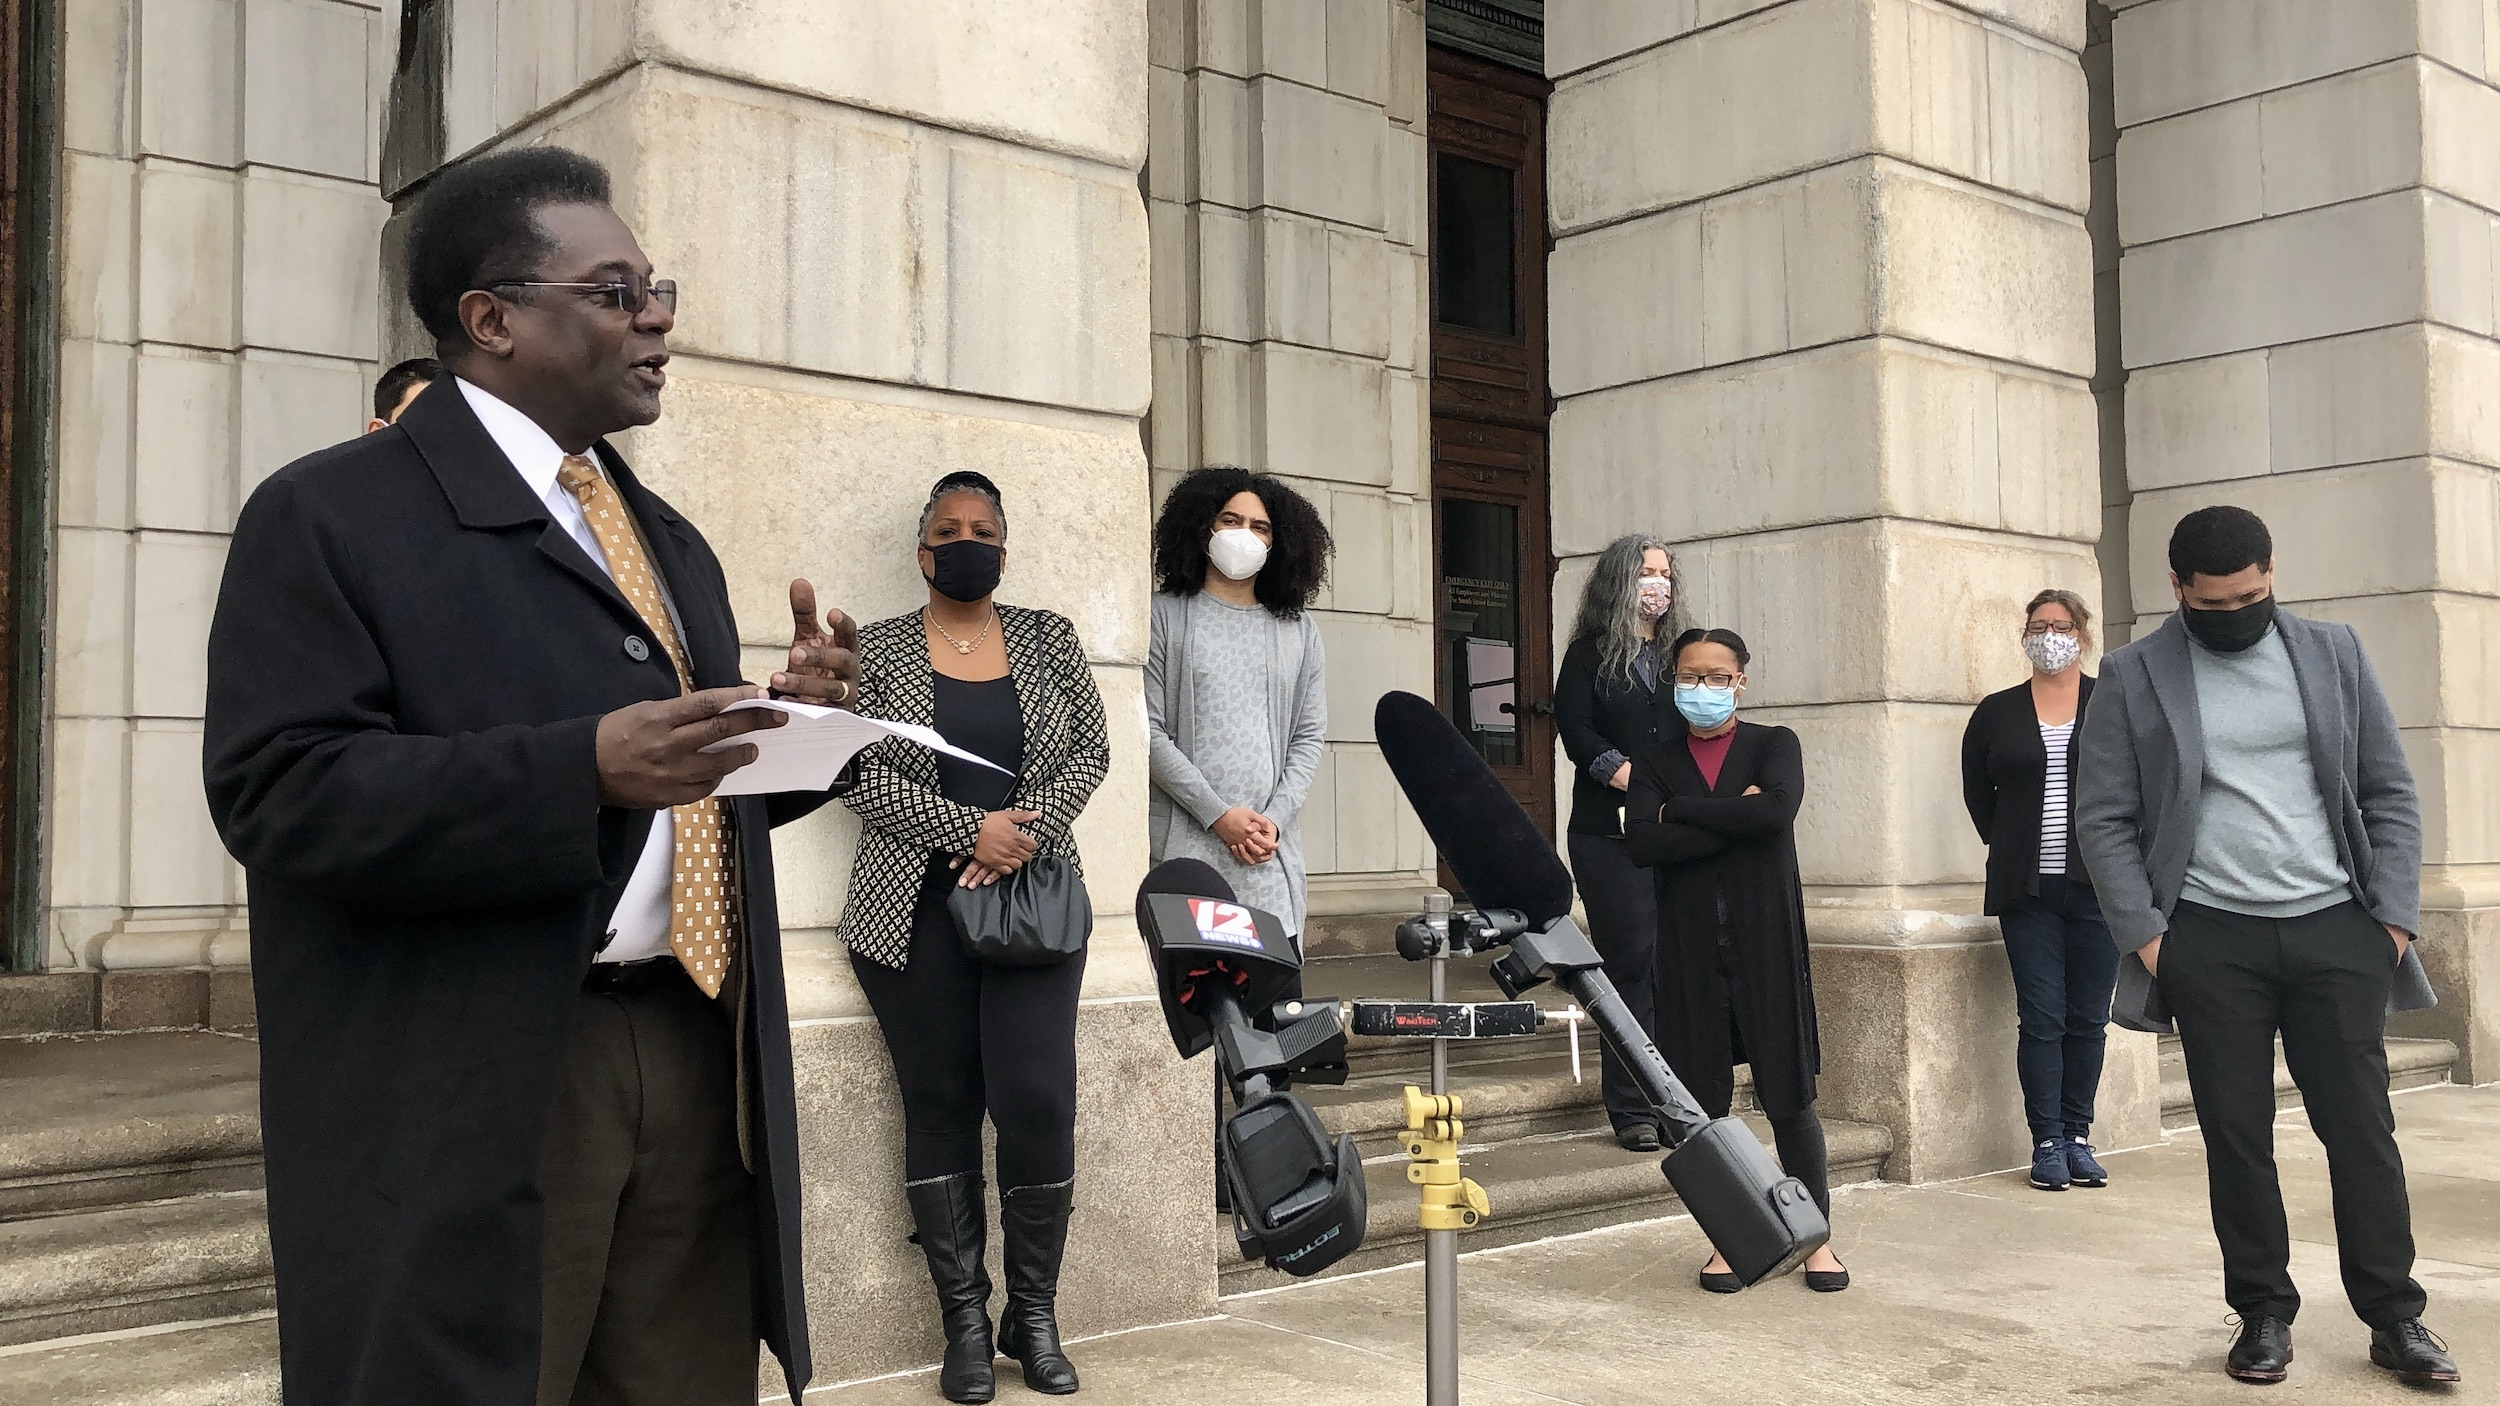 Photo for A call for vaccine justice from BIPOC community leaders